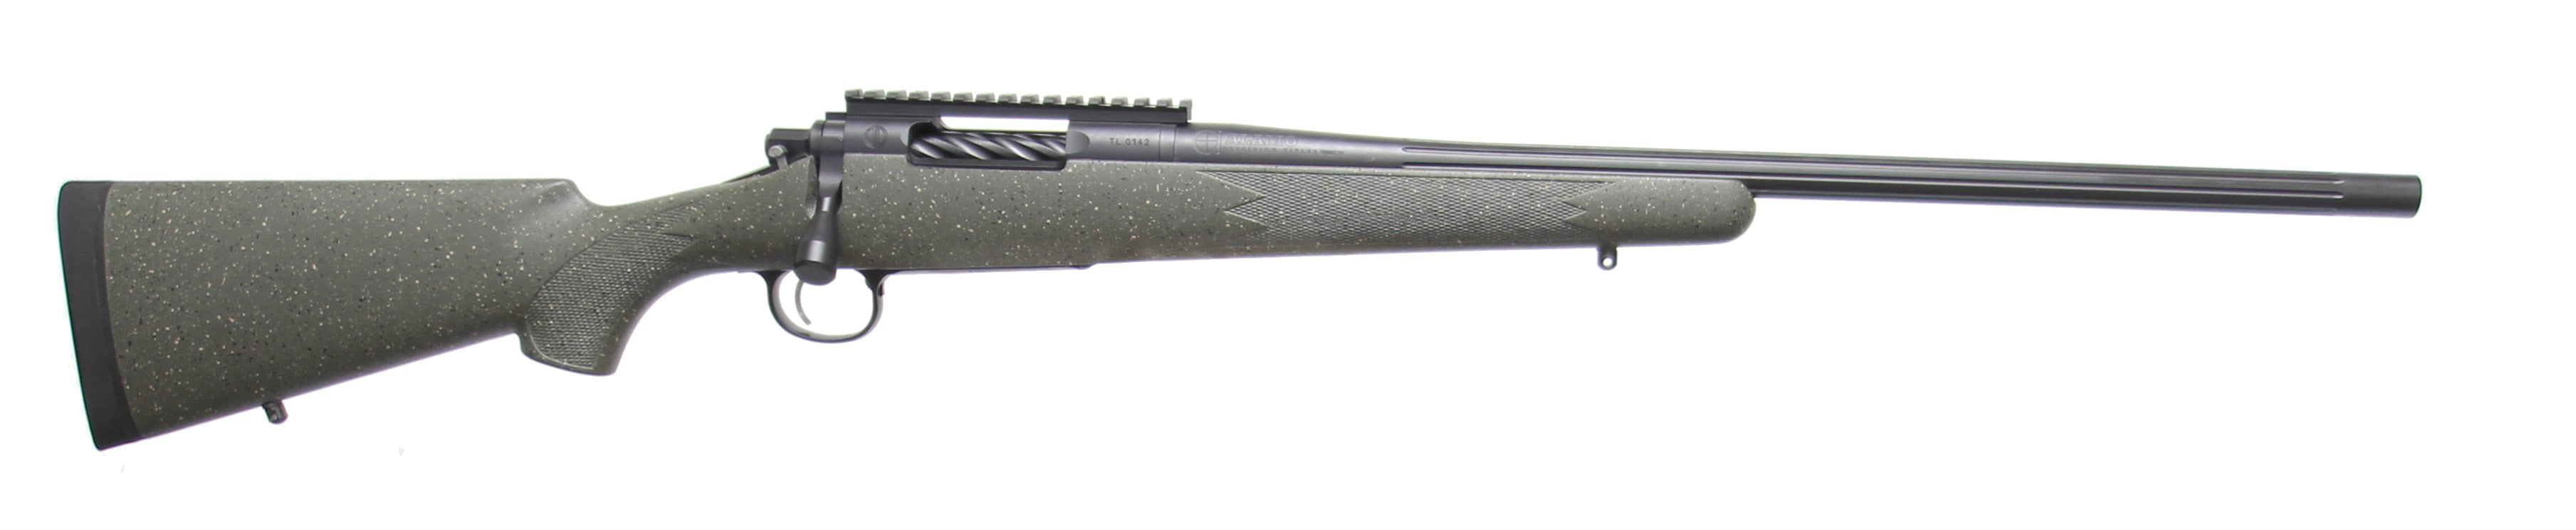 APR Custom Mountain Rifle 6.5 Creedmoor